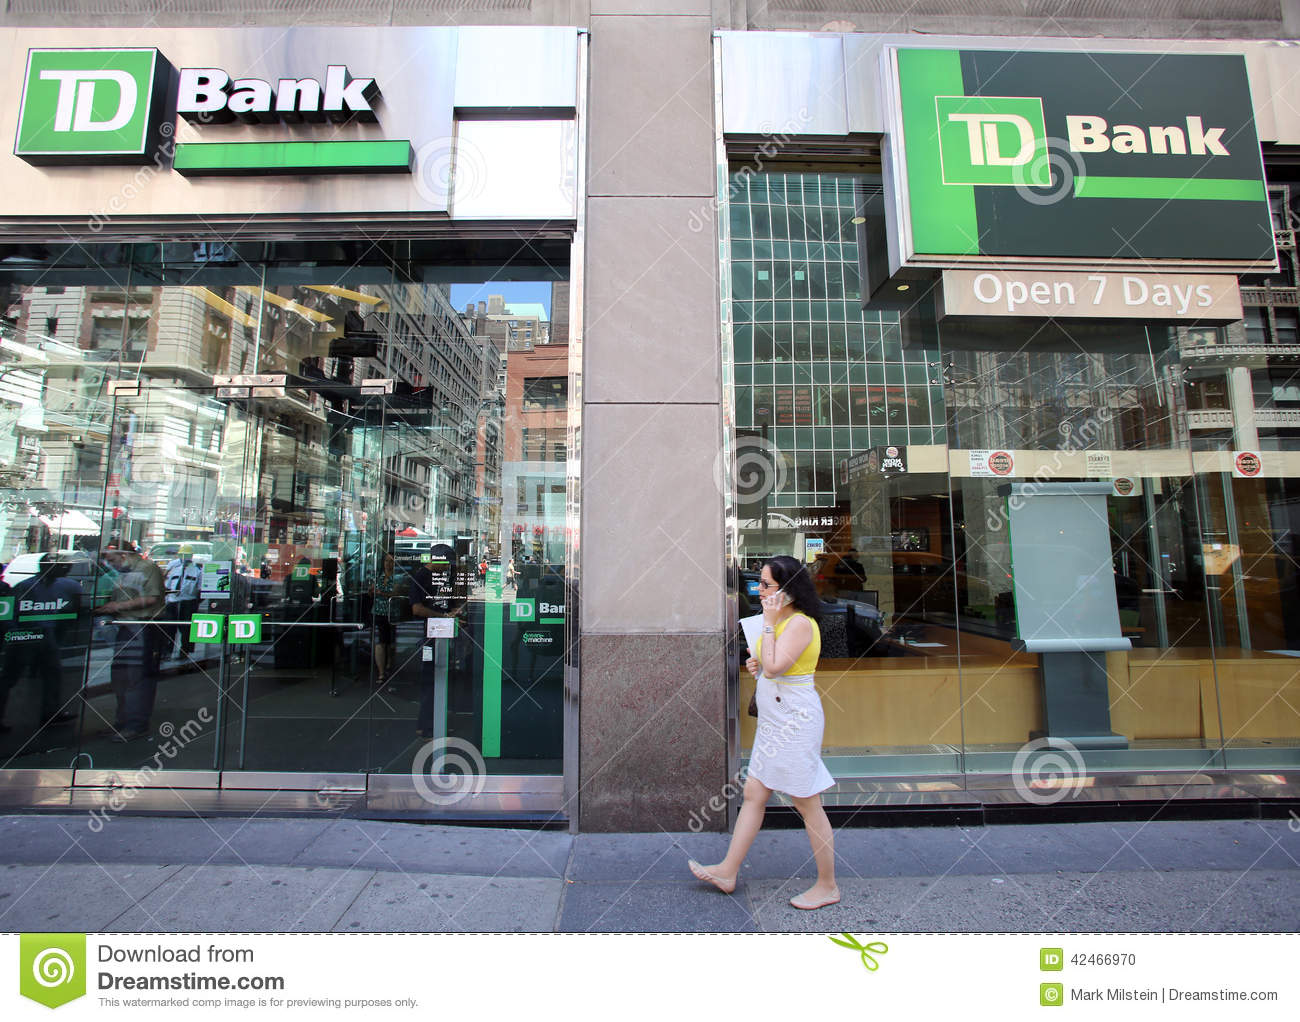 TD-BANK IN NEW YORK